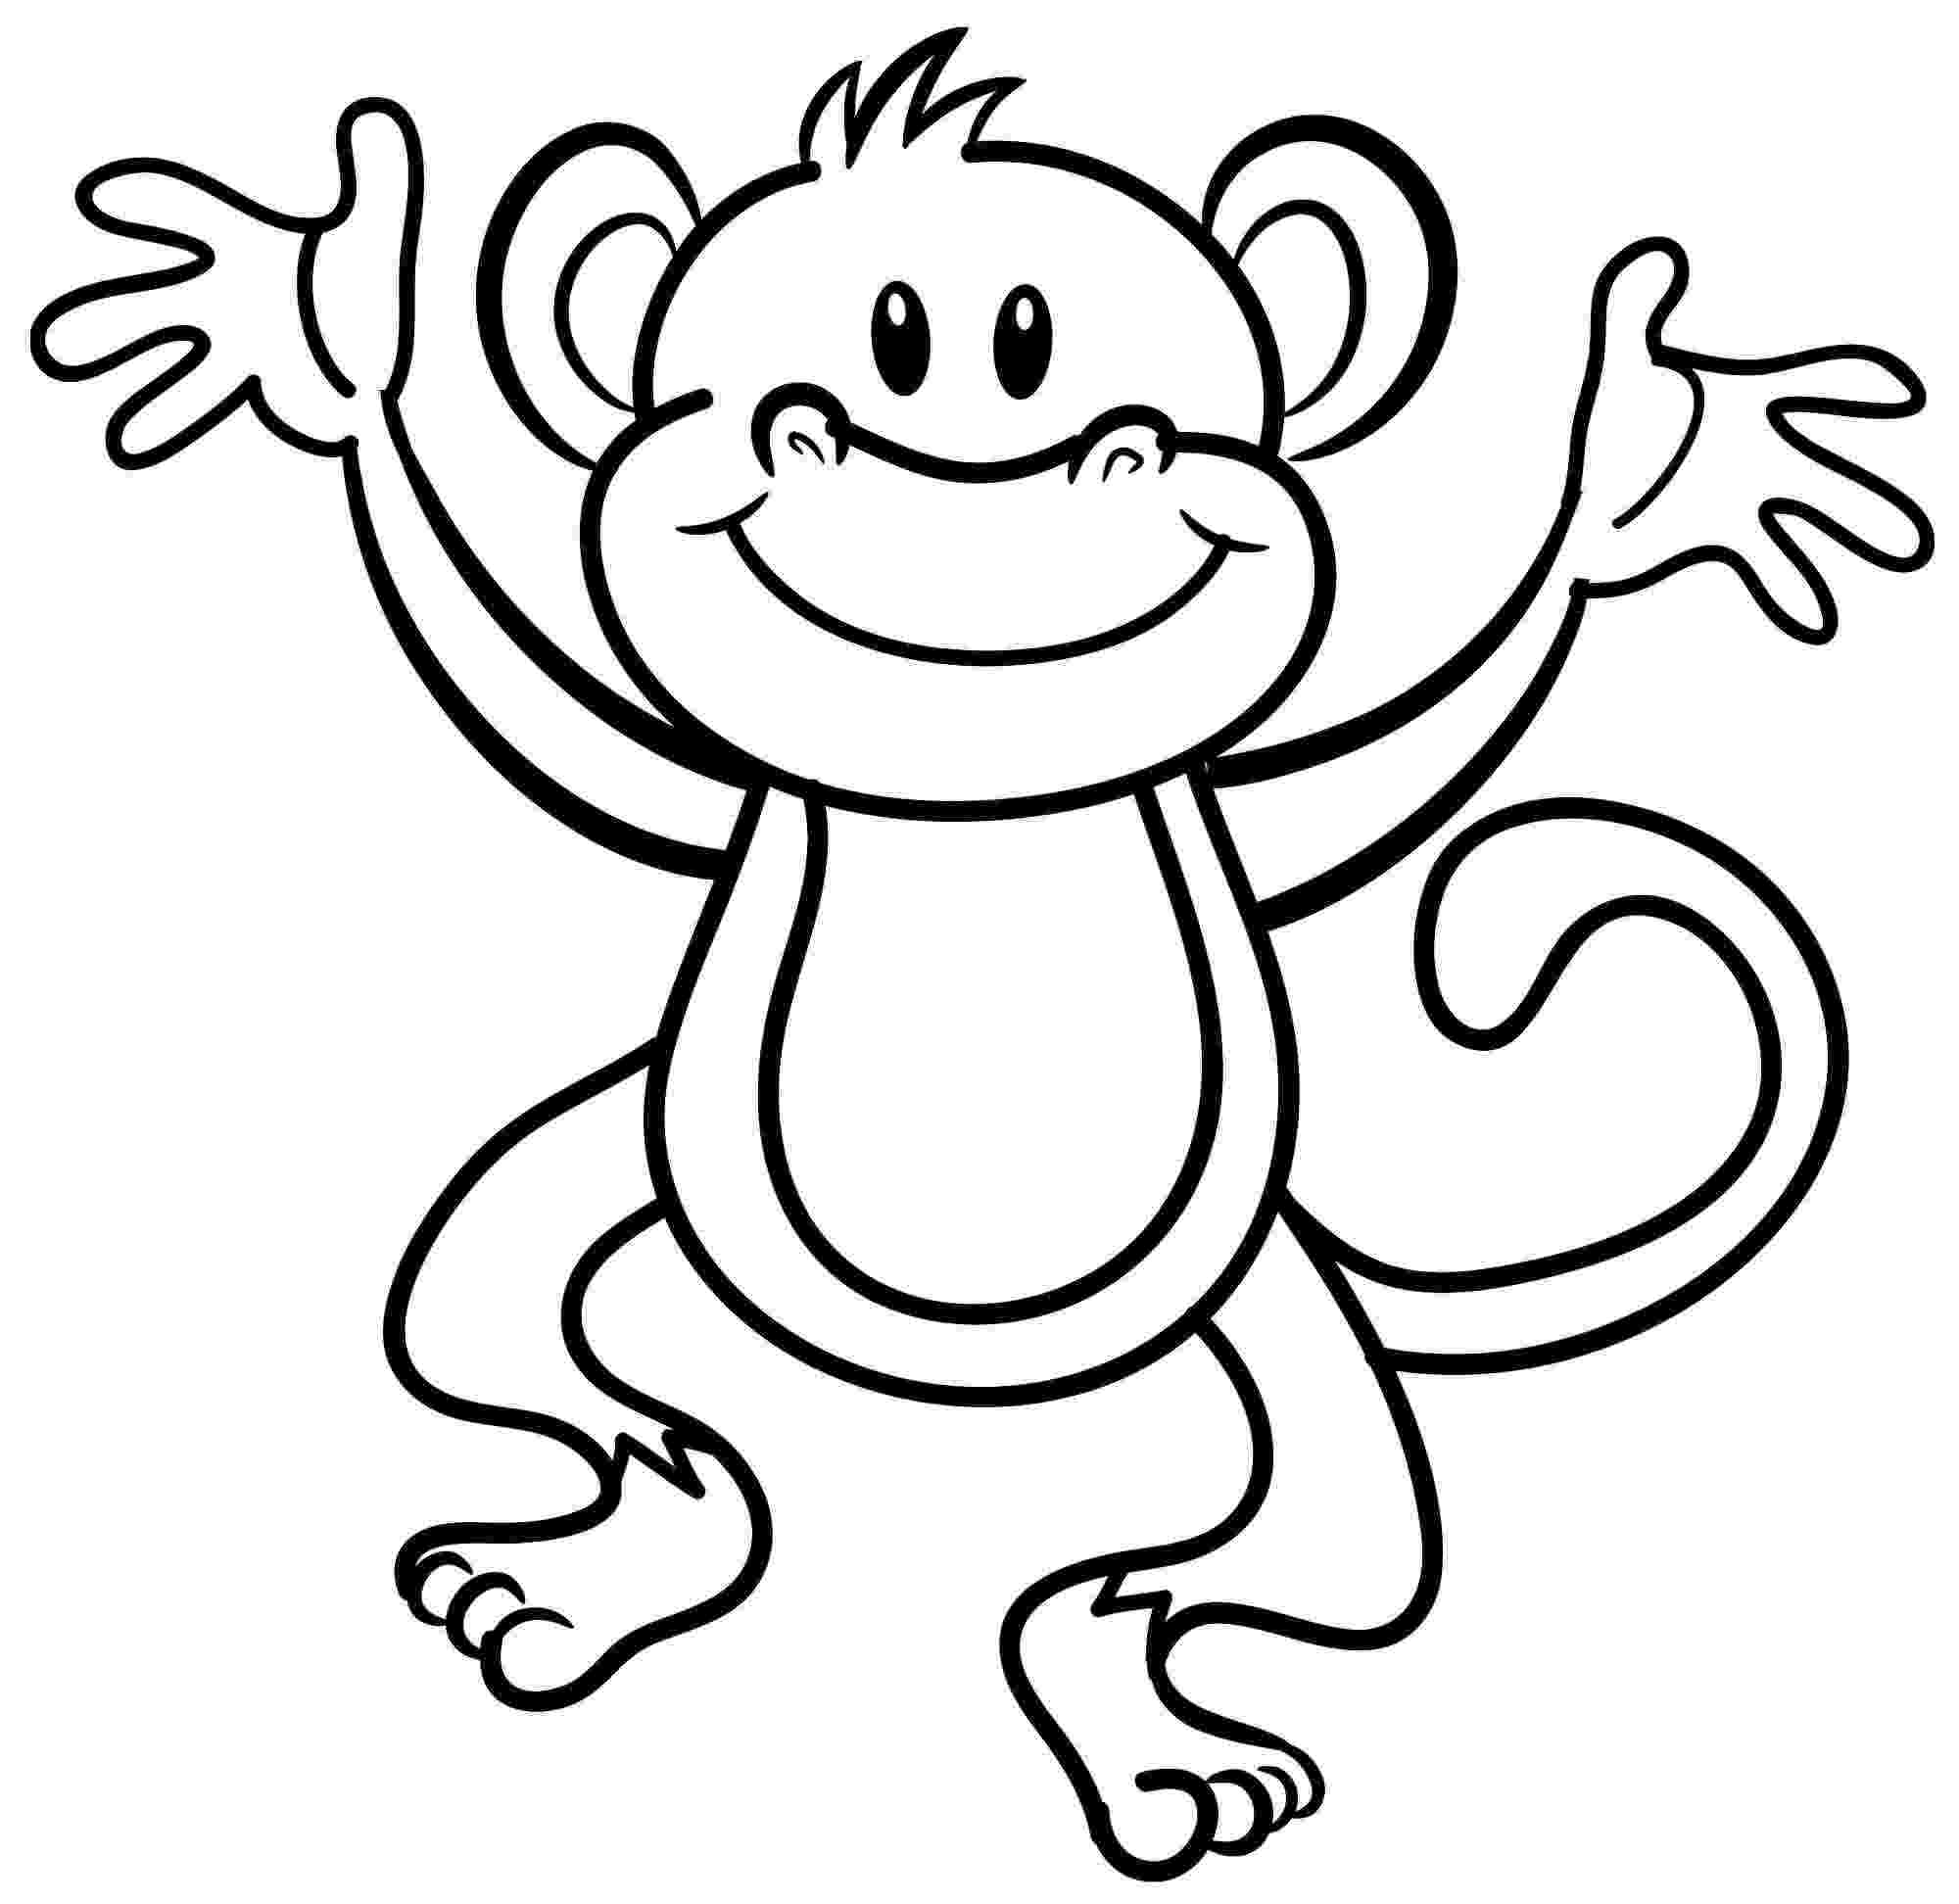 coloring animals monkey e monkey sticker ballzbeatz com homeschool printables monkey coloring animals